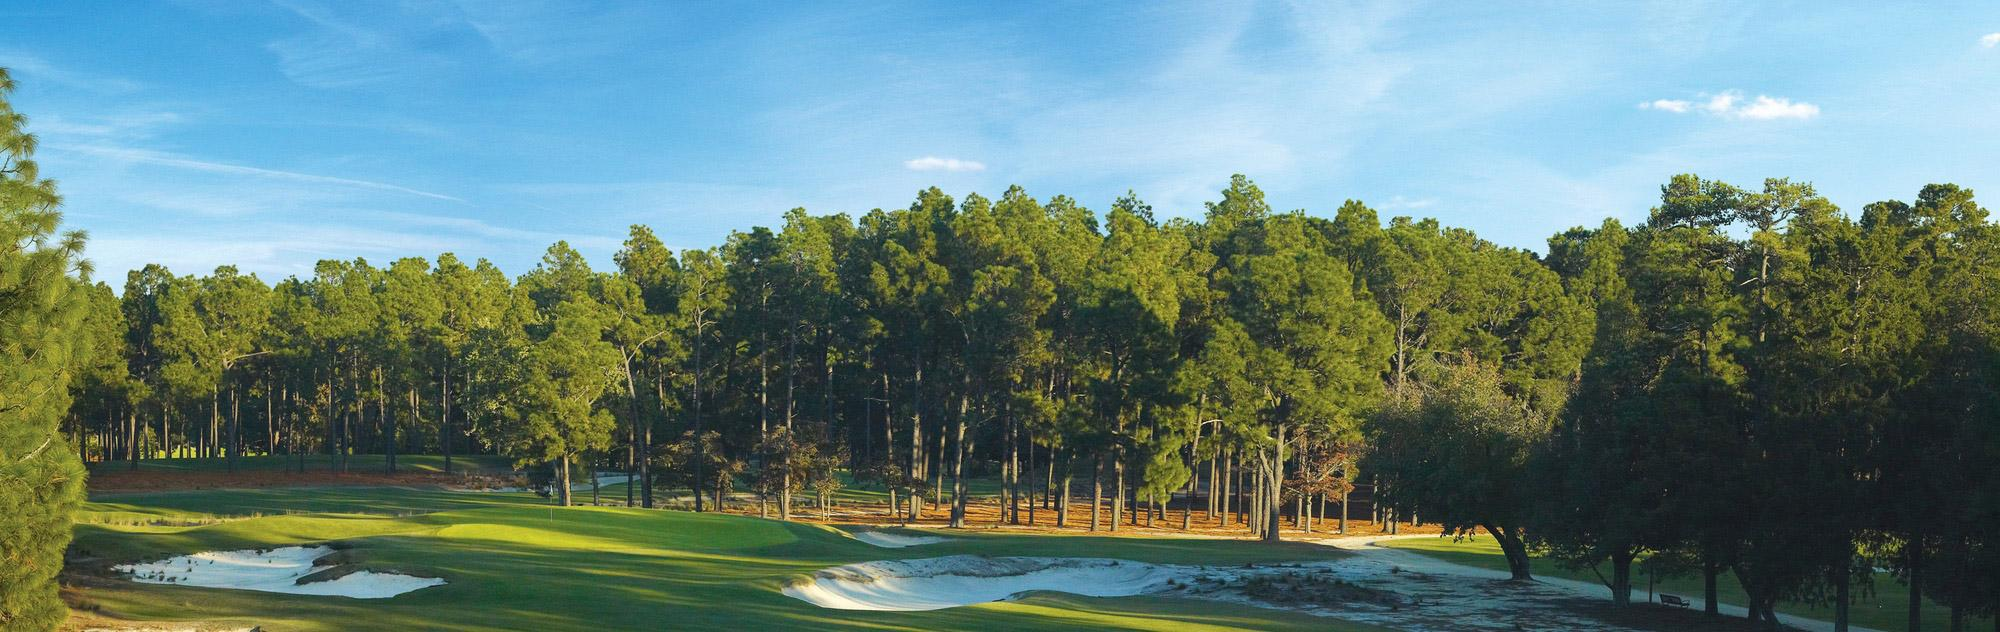 Pinehurst Resort Golf